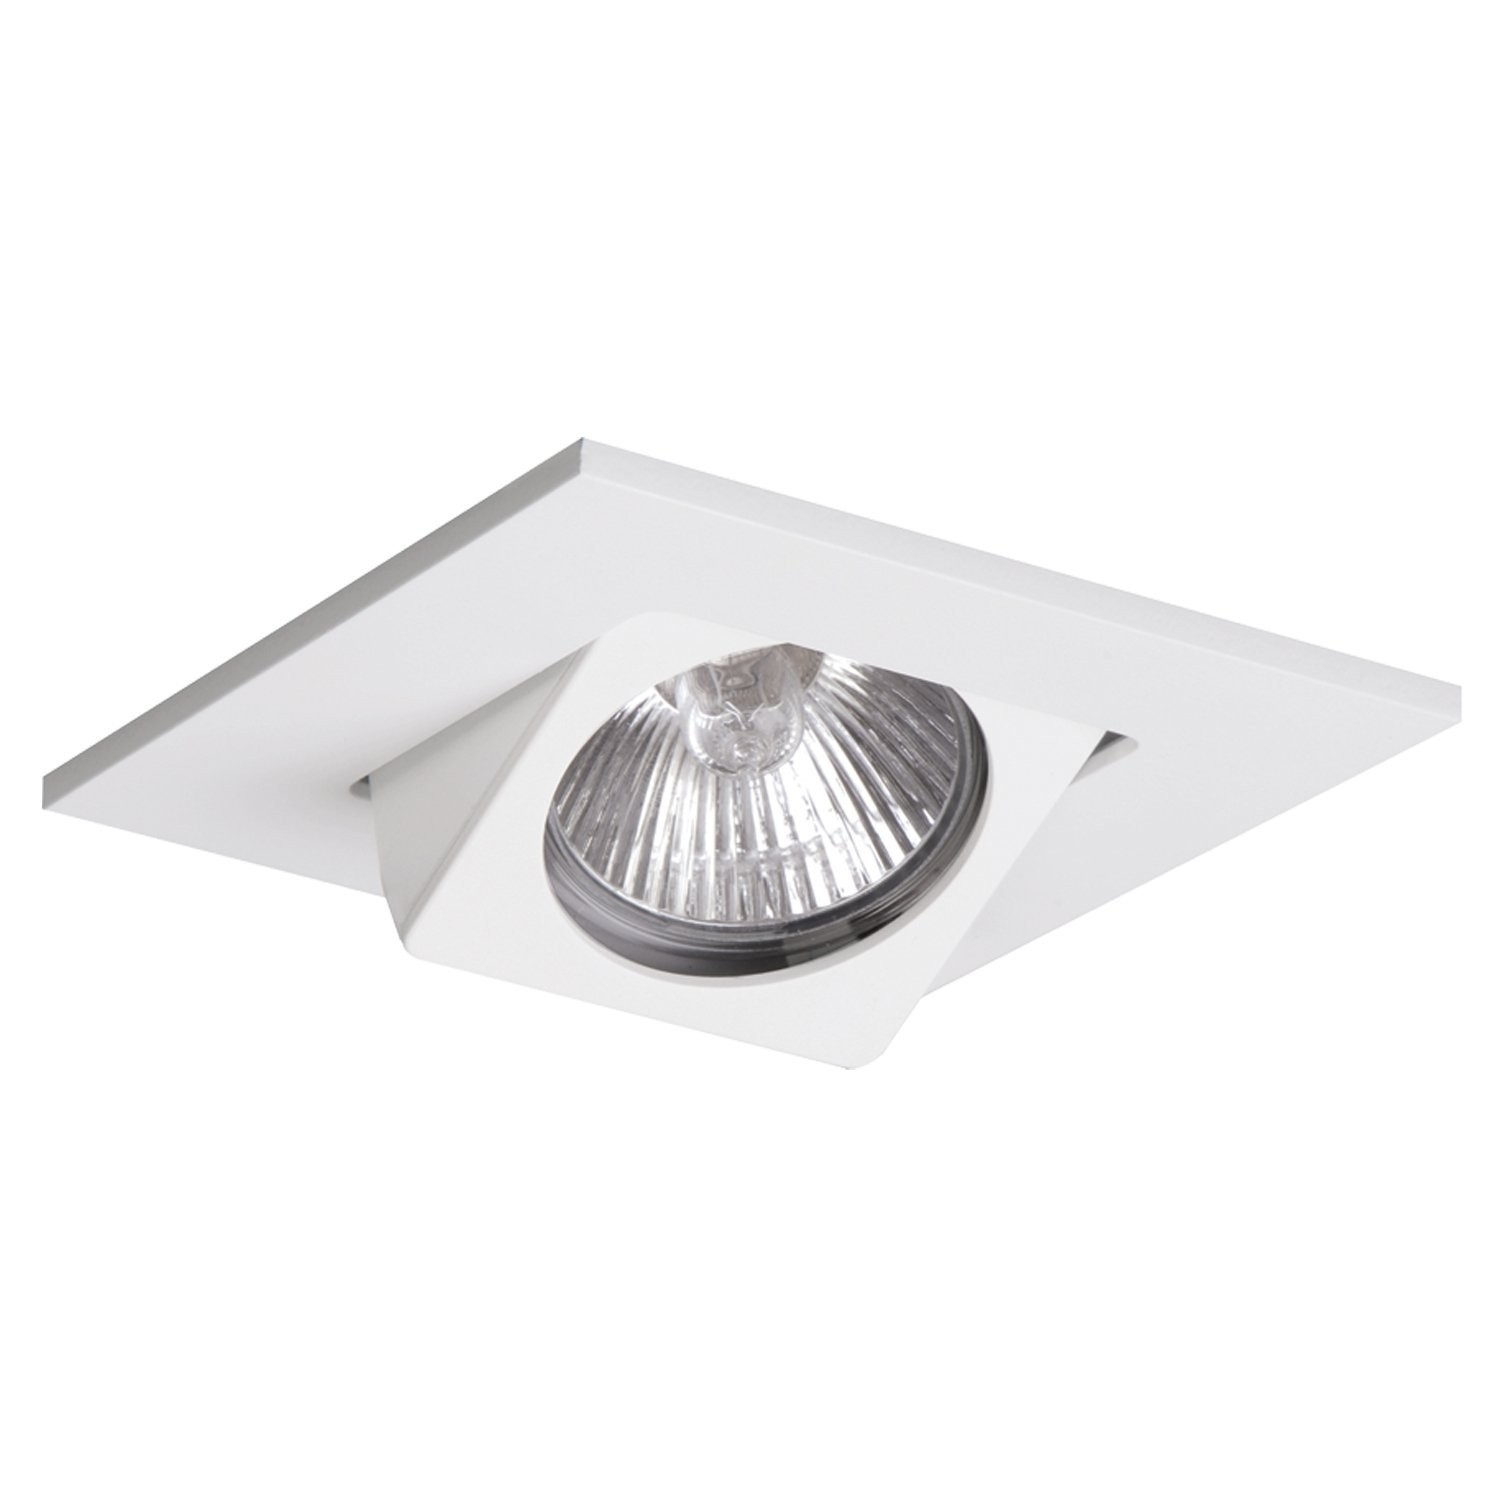 How to replace recessed lighting trim - Halo 3013wh